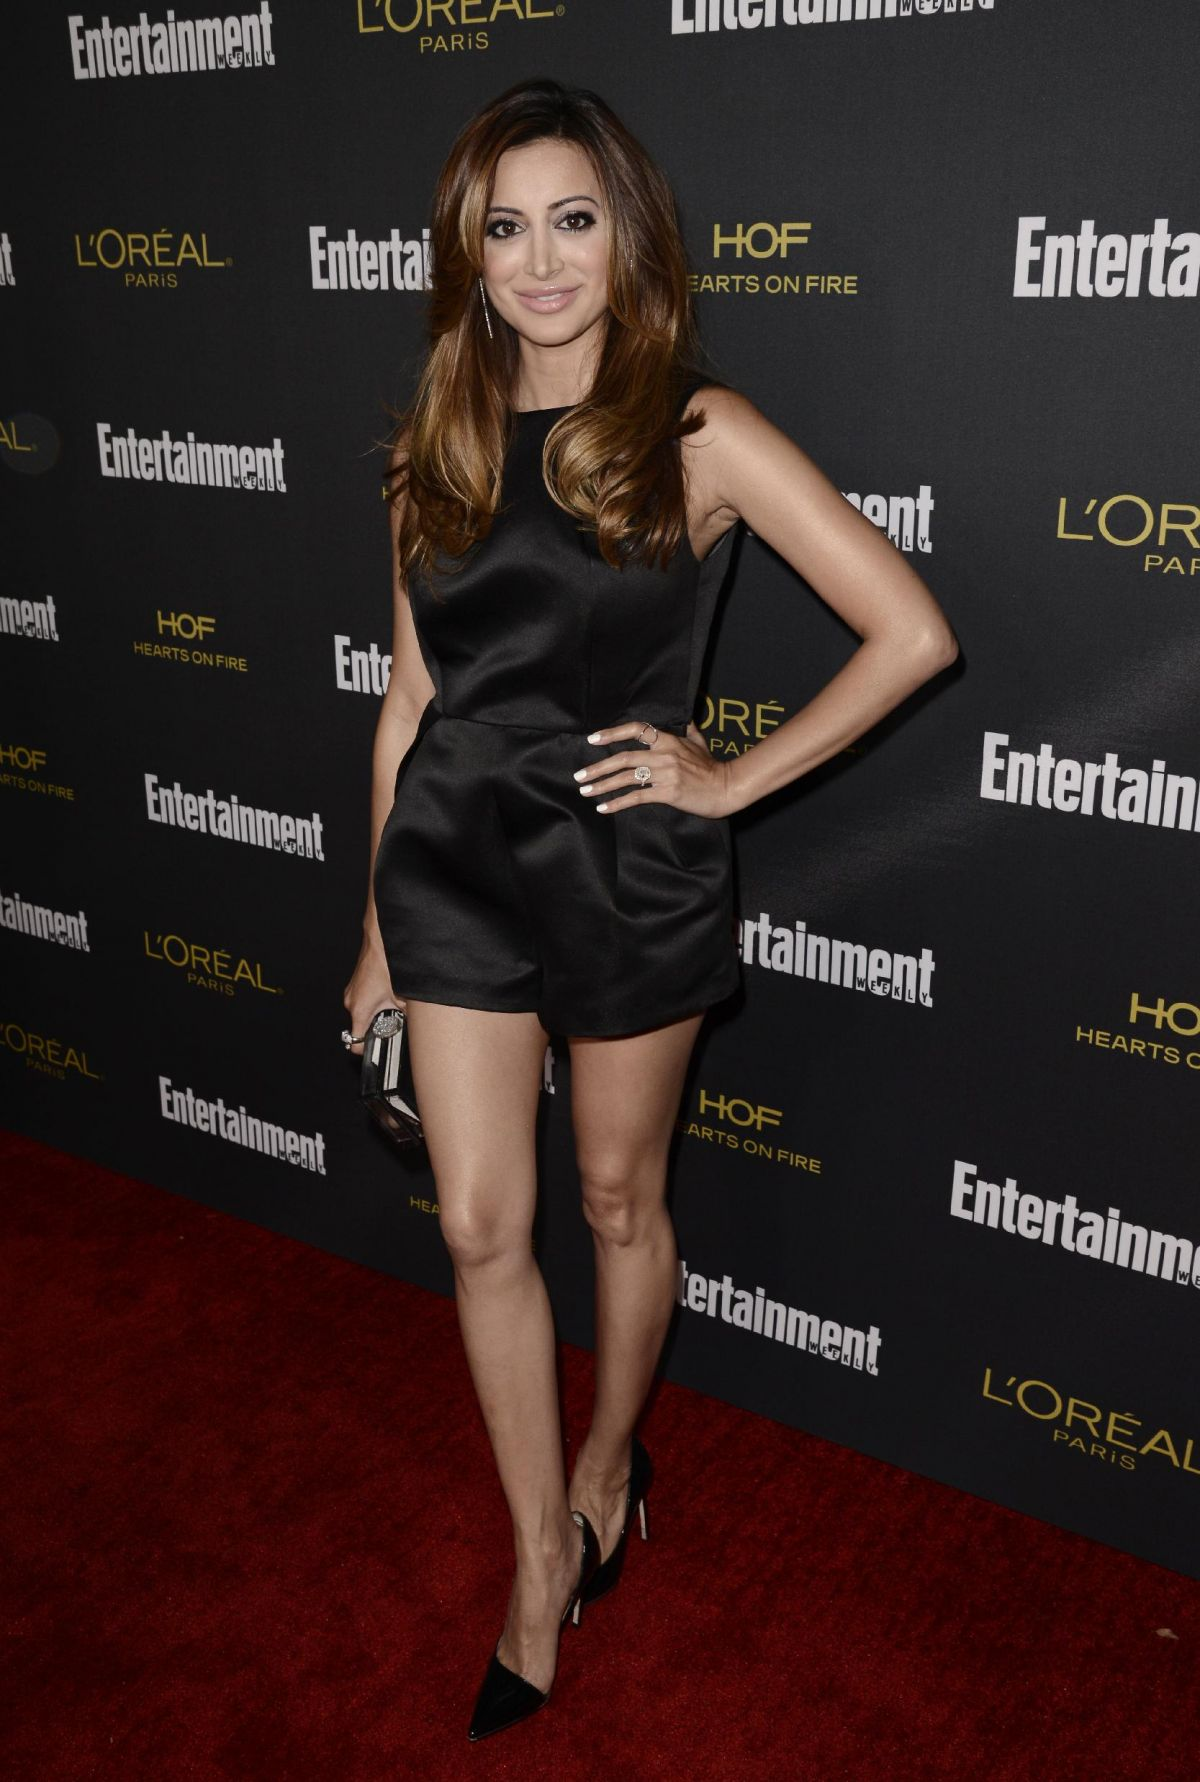 NOREEN DEWULF at Entertainment Weekly's Pre-emmy Party